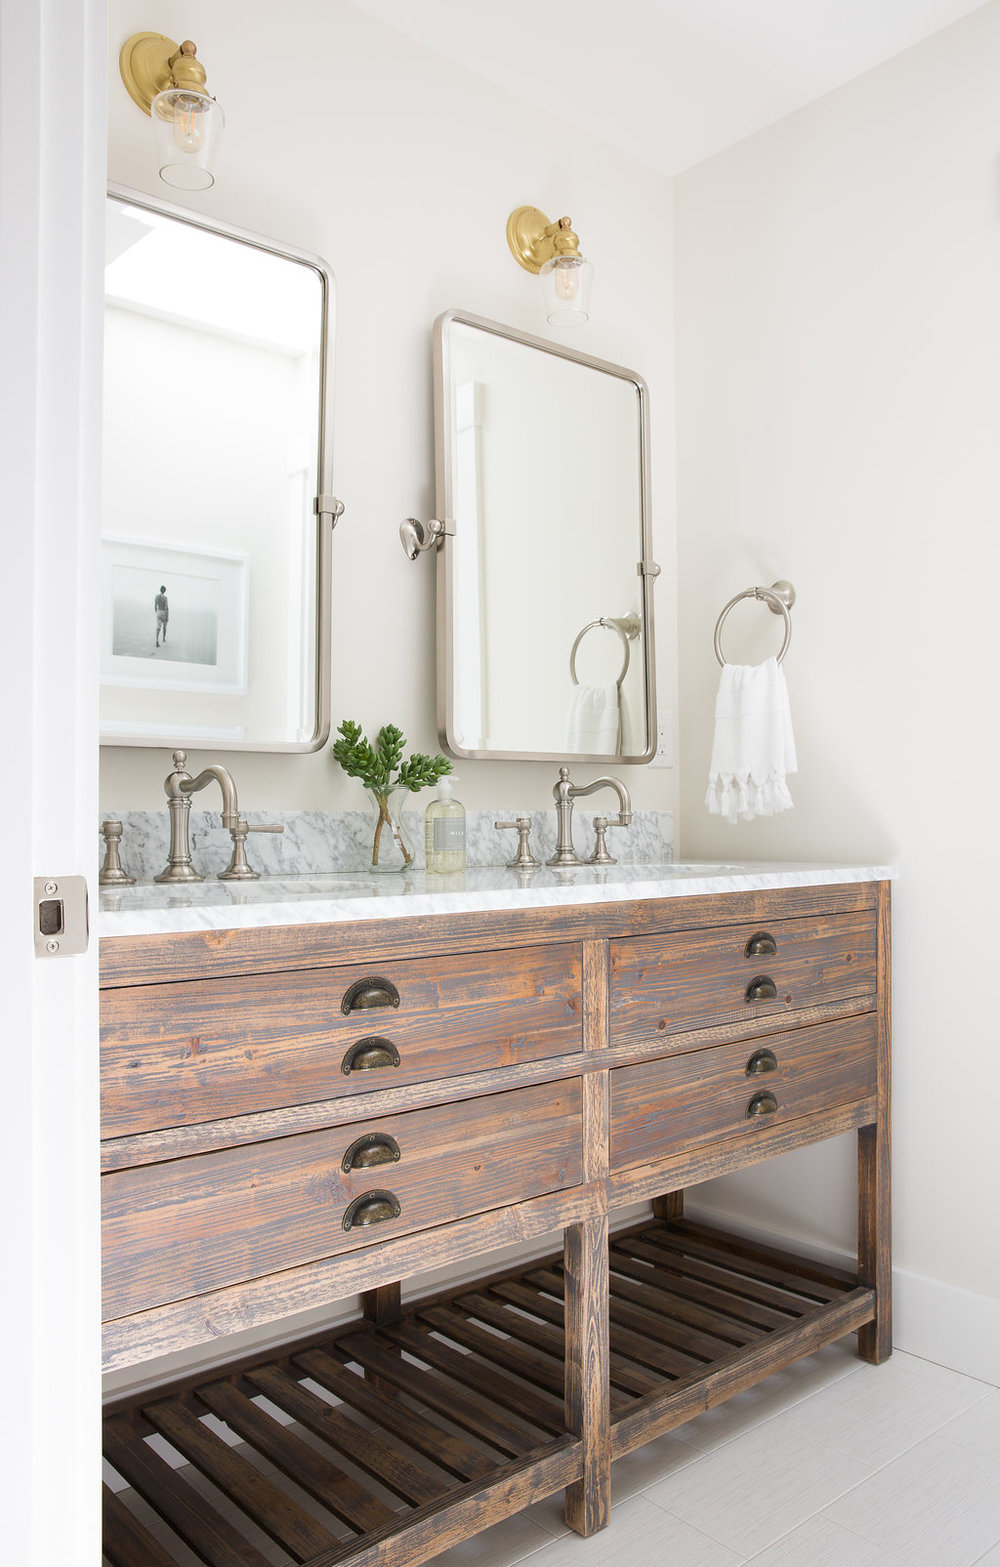 Love u0026 Interiors Berkeley Modern Craftsman Classic Kids Bath with Rustic Vanity and Mixed Metals - & Interior Design - Love u0026 Interiors